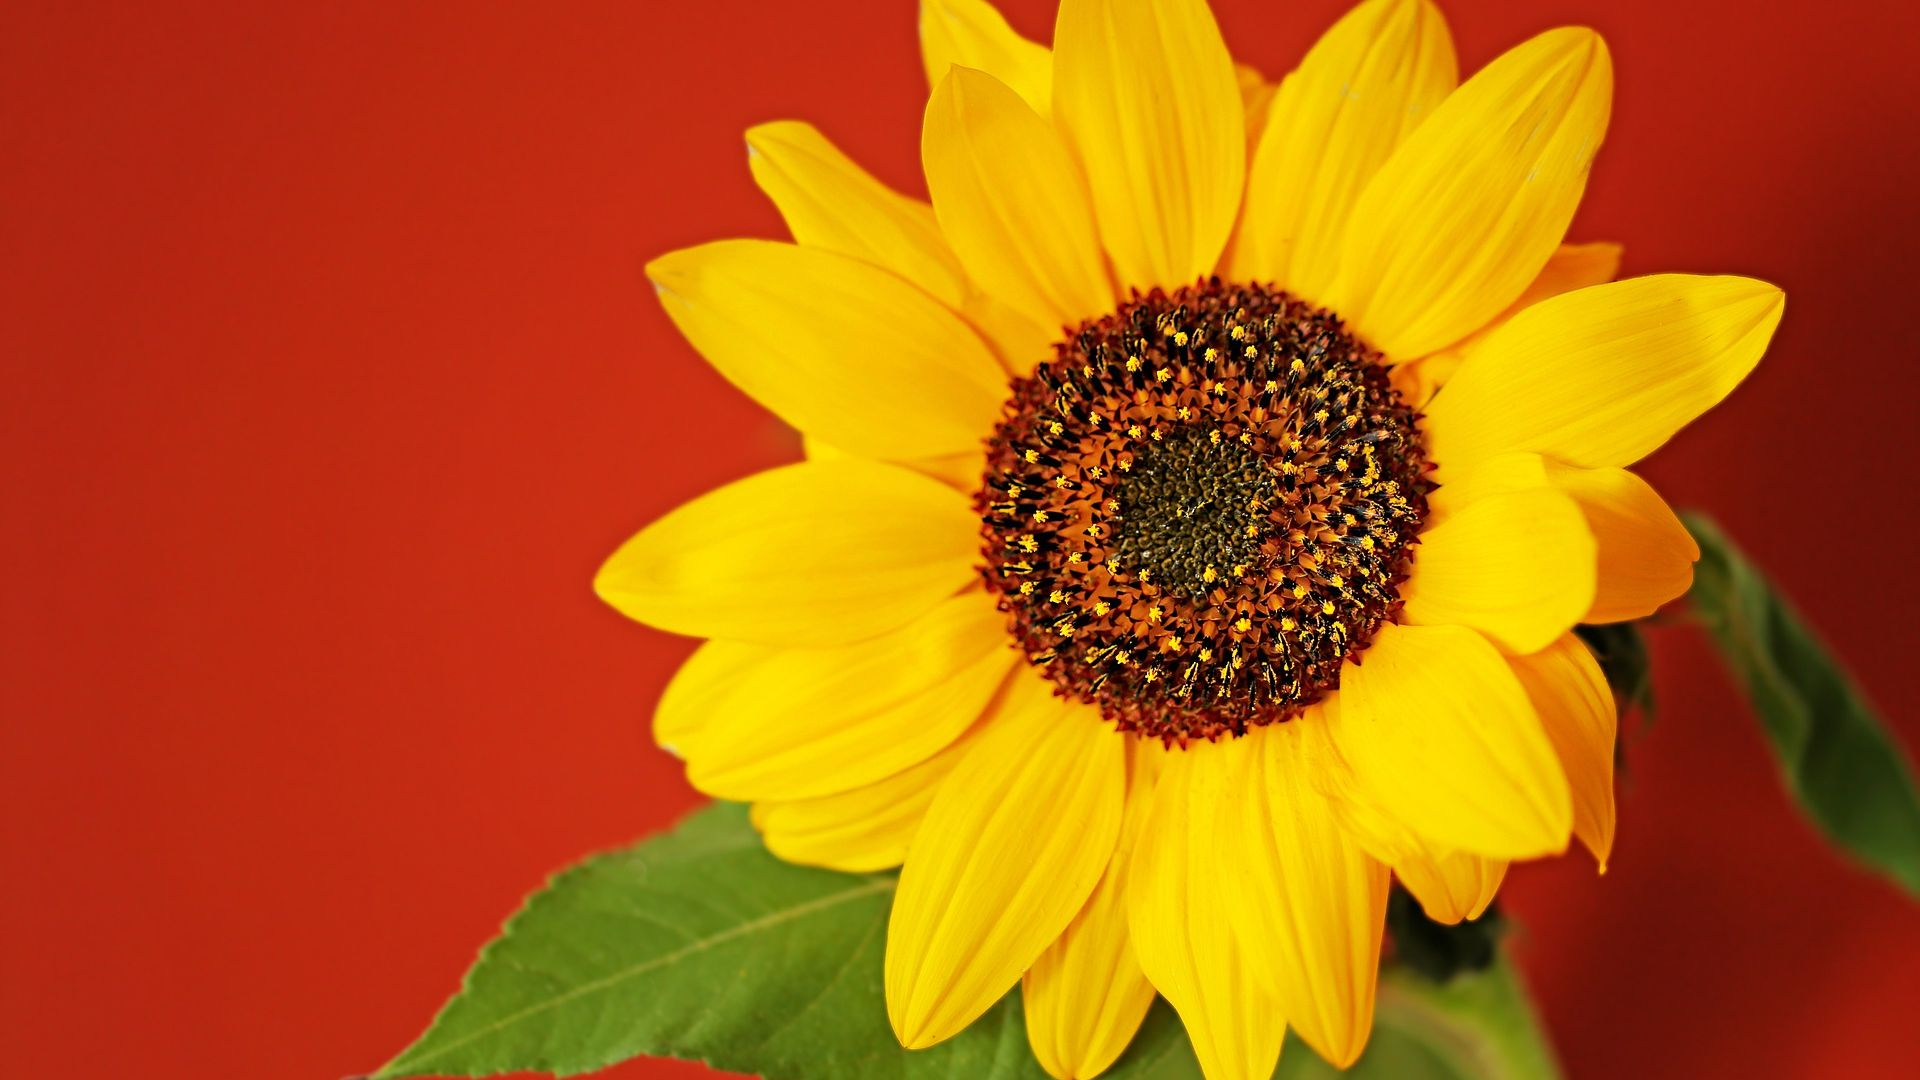 Sunflower With Red Background Free Wallpaper Hq Mewallpaper